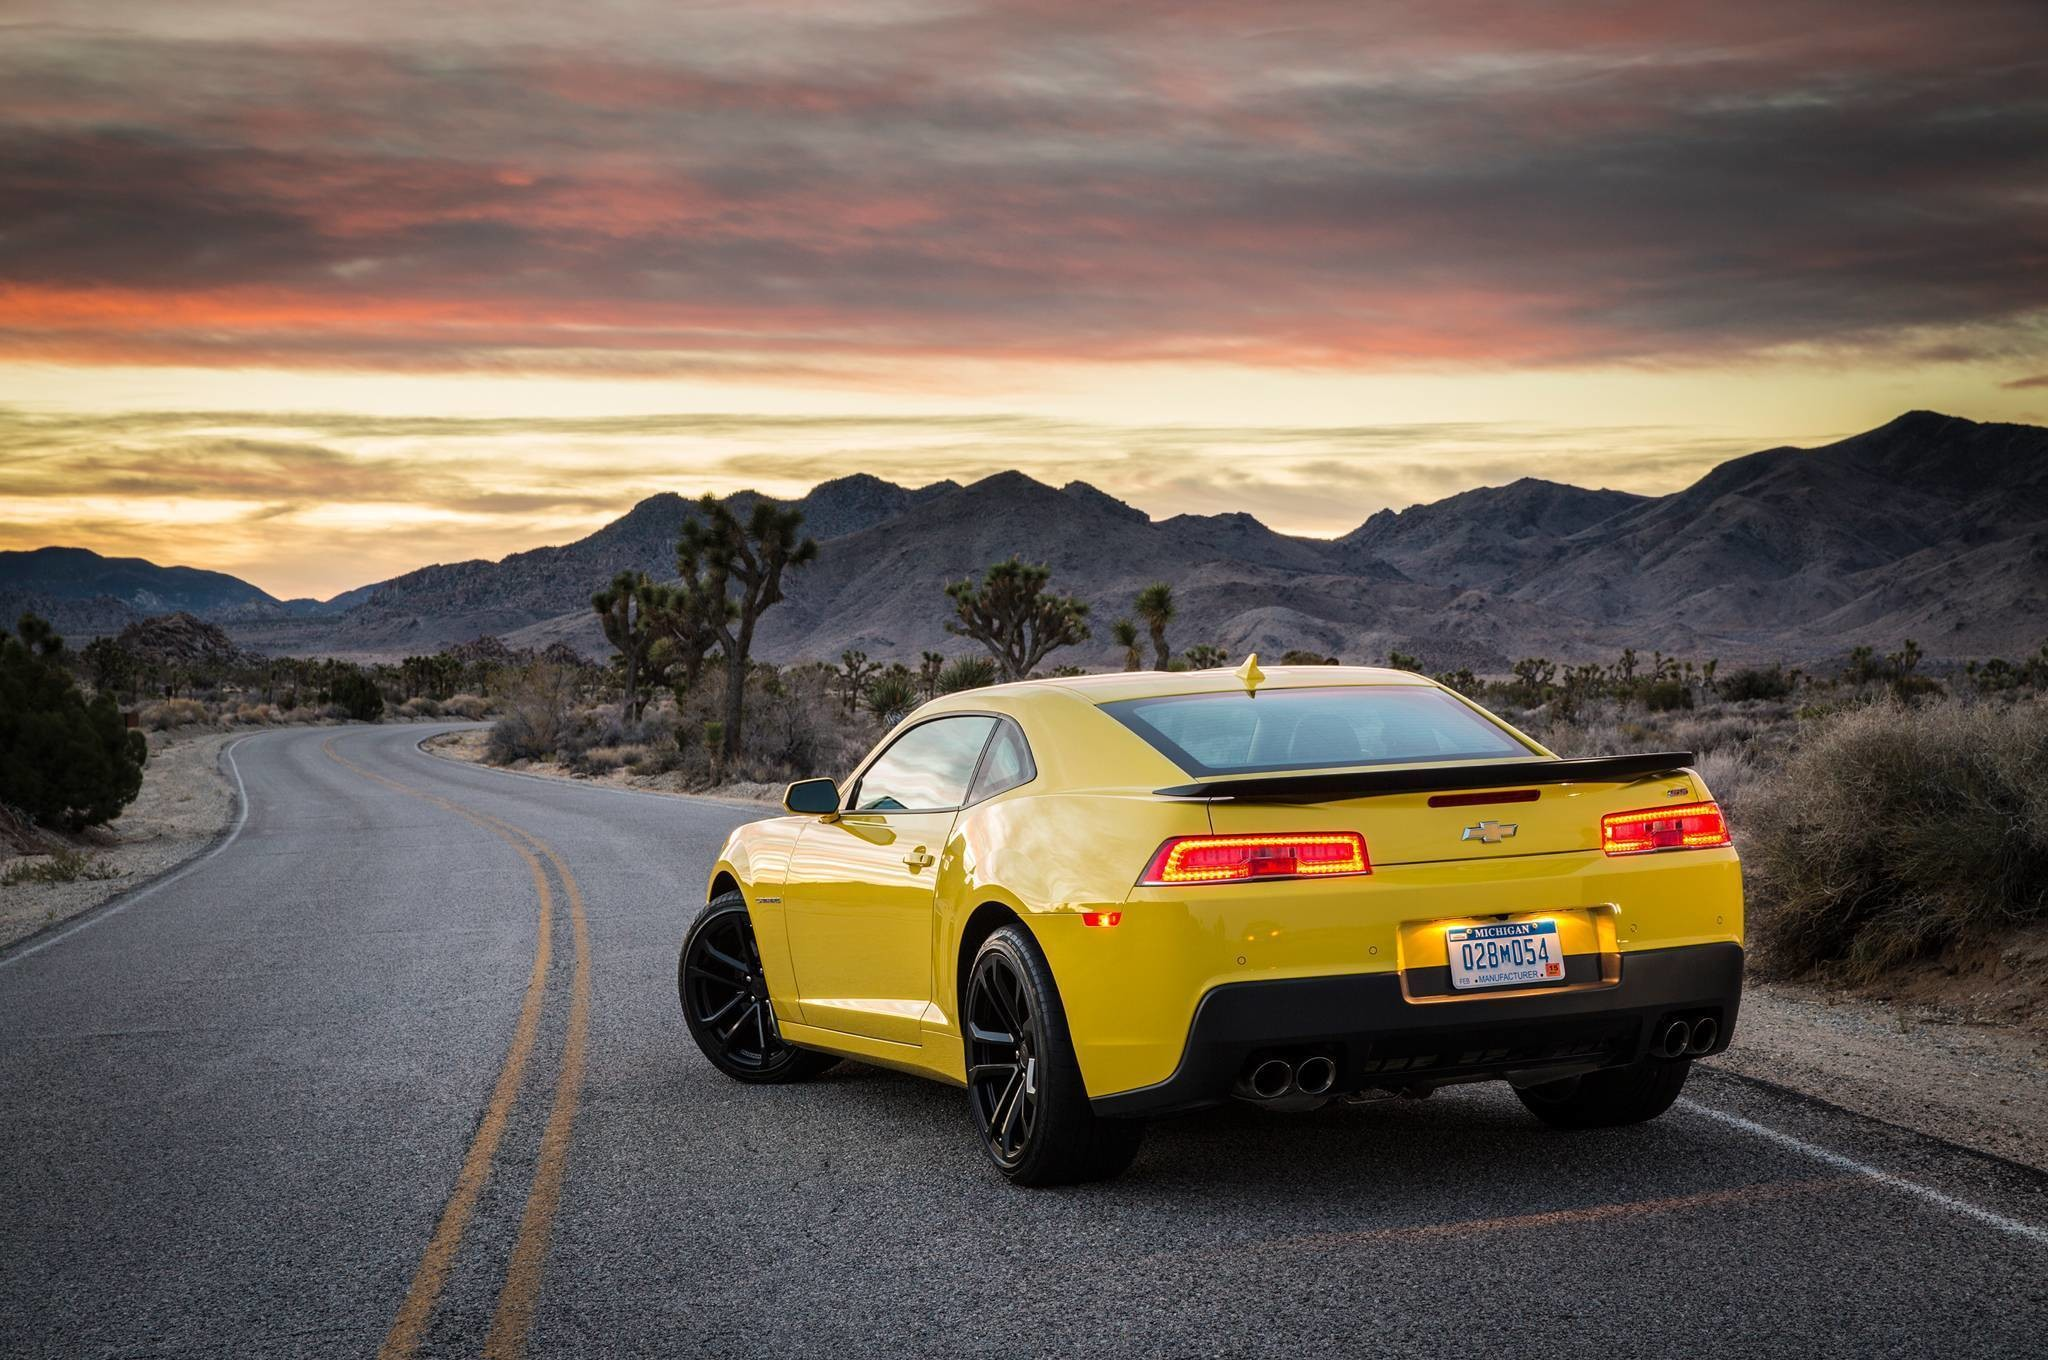 2048x1360 2016 Chevrolet Camaro Wallpaper Hd Photos Wallpapers And Other Yellow